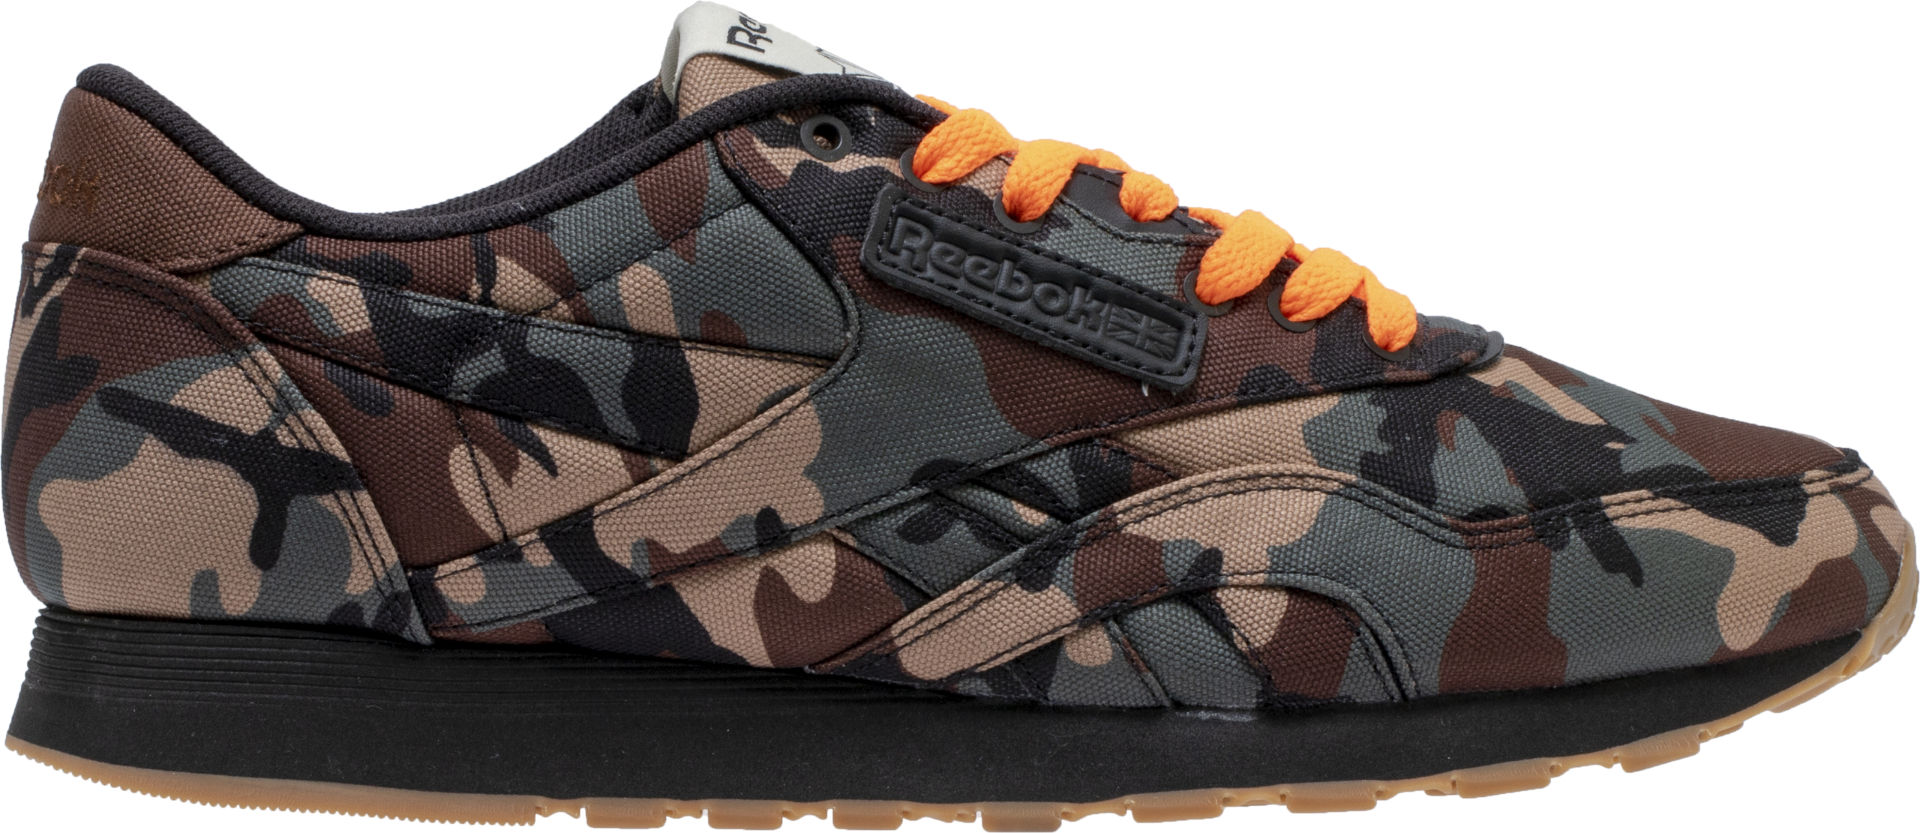 Shoe Palace X Reebok G.I. Joe Camo Sneaks Launch 6/30/18